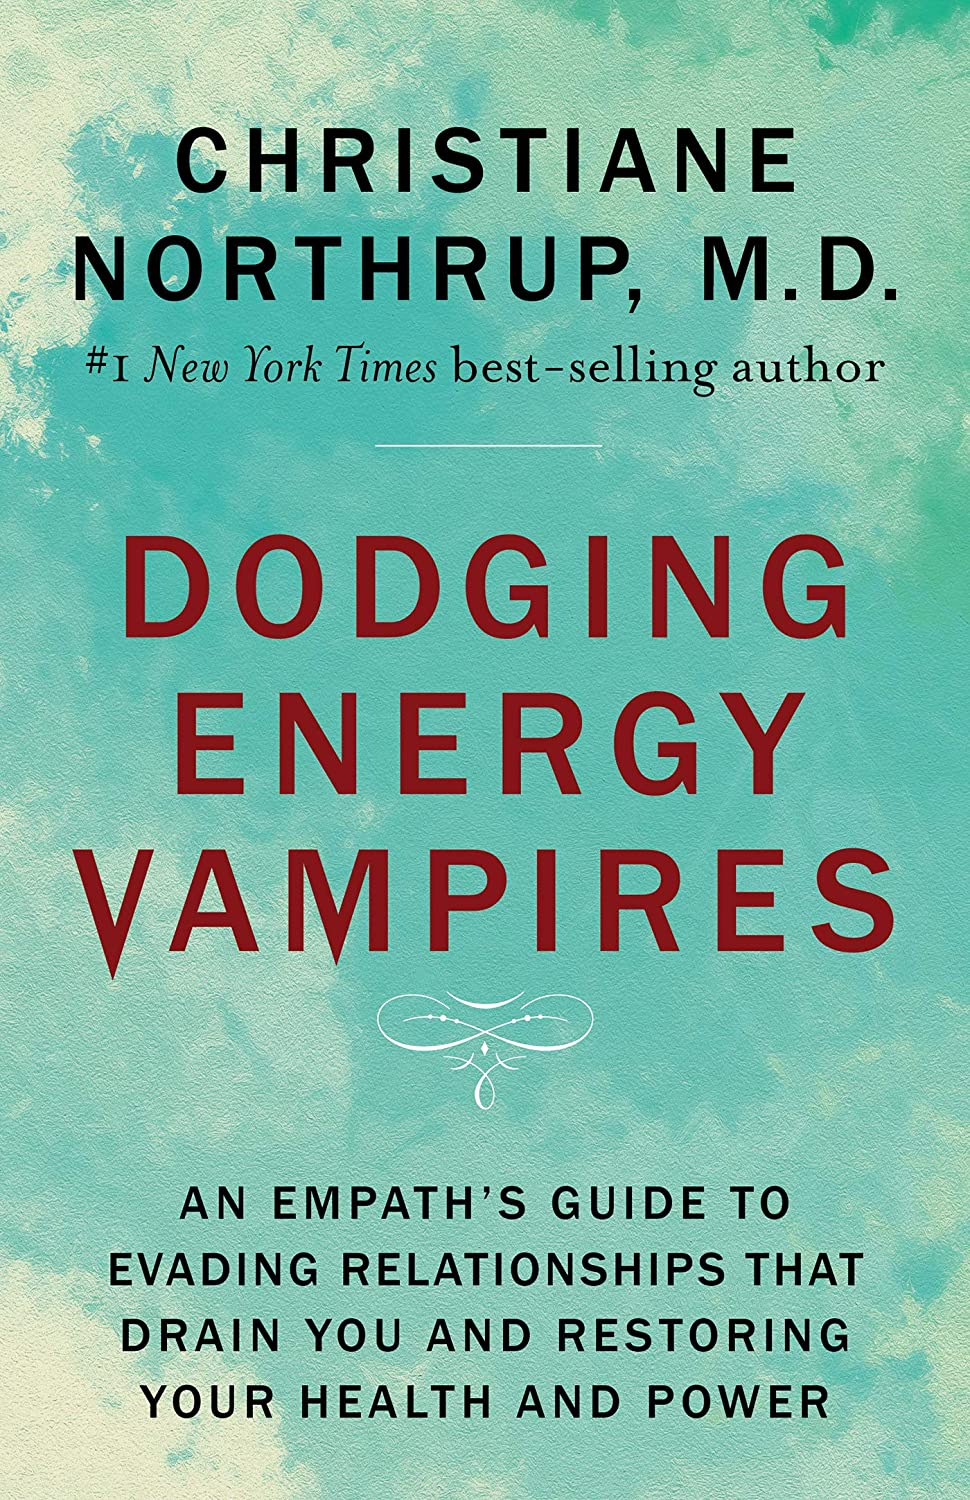 Dodging Energy Vampires: An Empath's Guide to Evading Relationships That  Drain You and Restoring Your Health and Power eBook: Christiane Northrup: